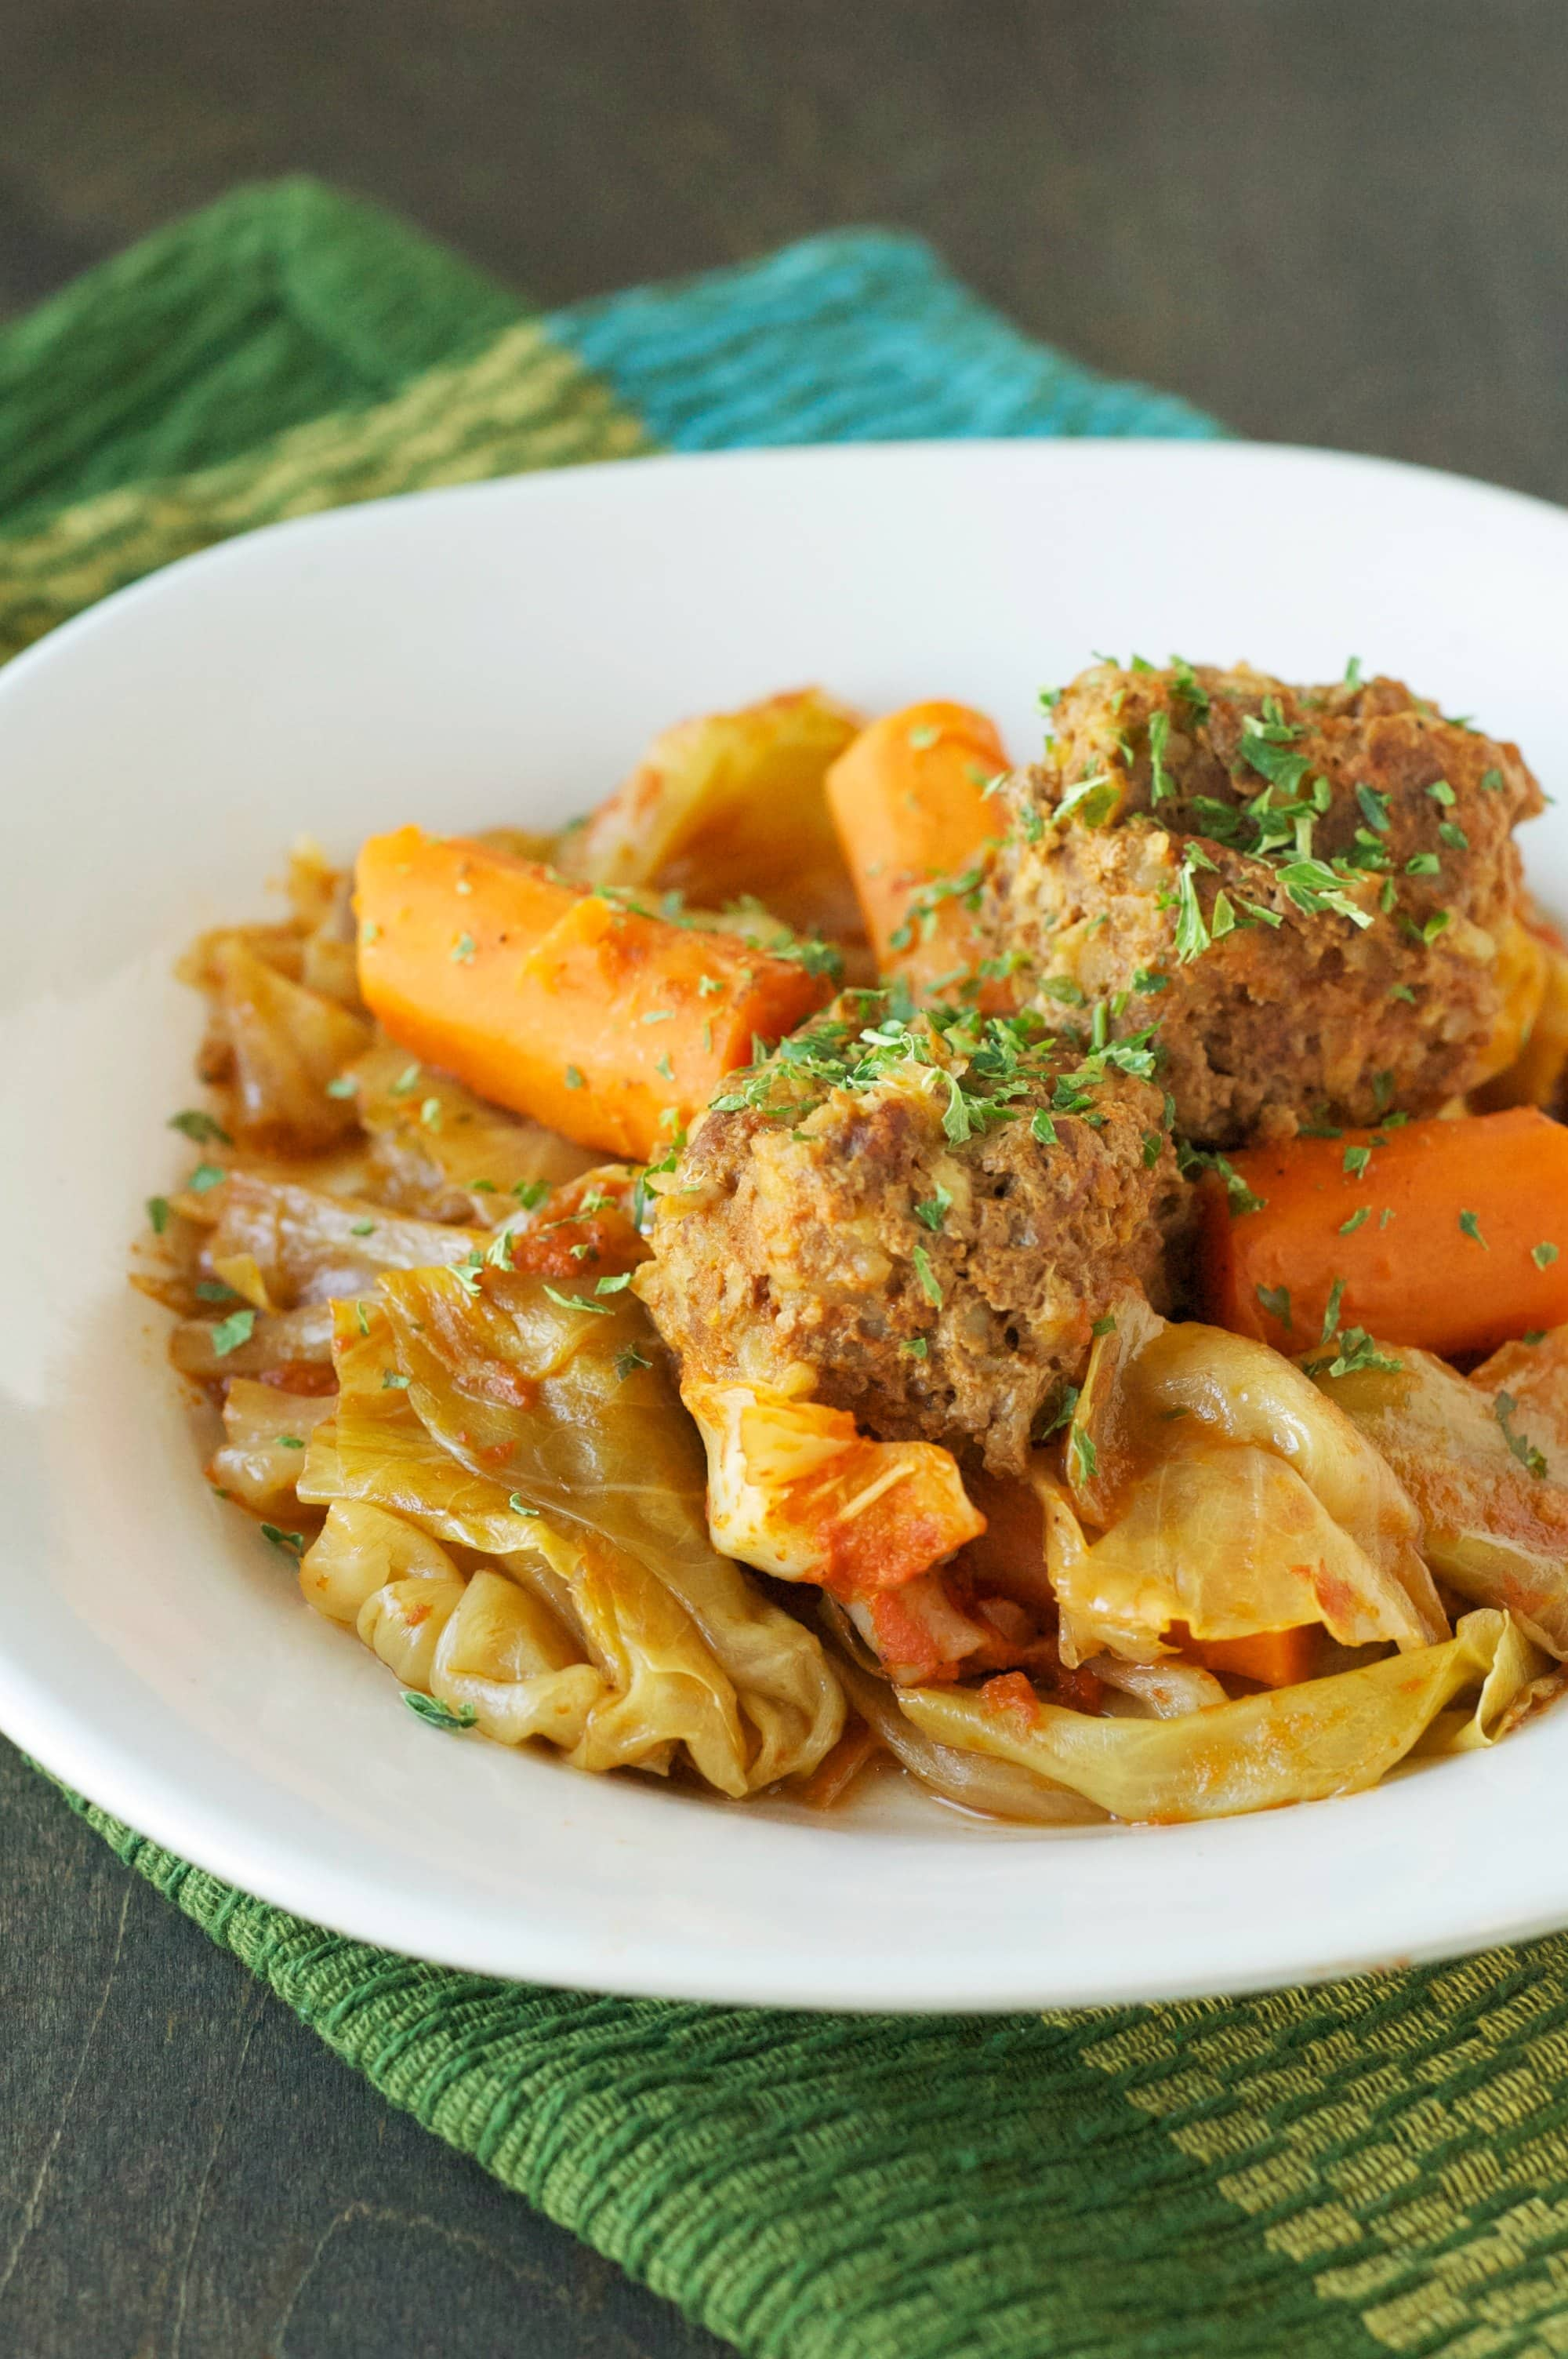 meatballs, carrots and cabbage in white serving plate on blue and green placemat